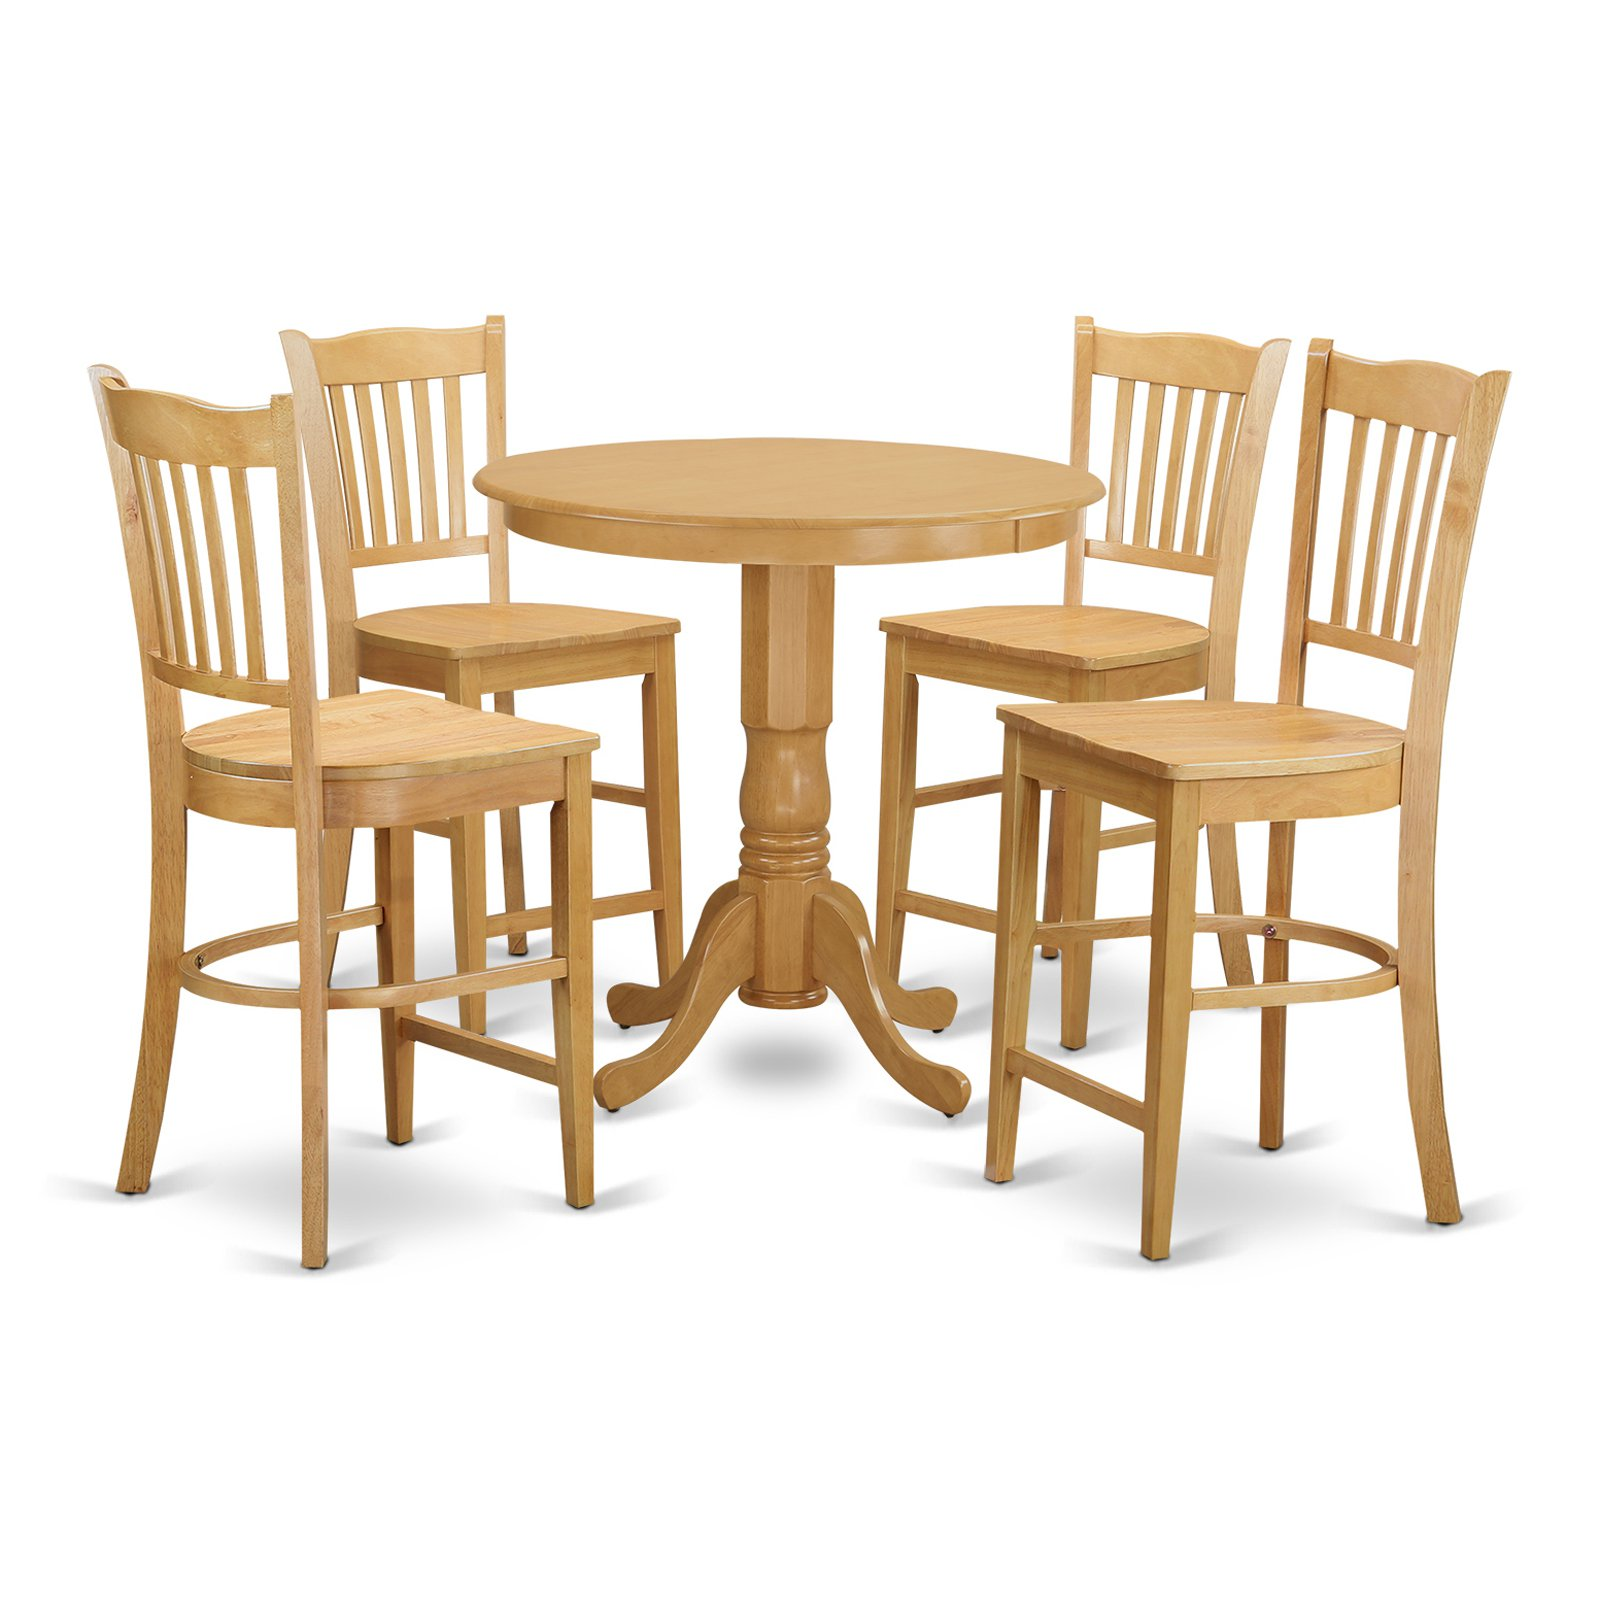 East West Furniture Jackson 5 Piece Comb Back Dining Table Set